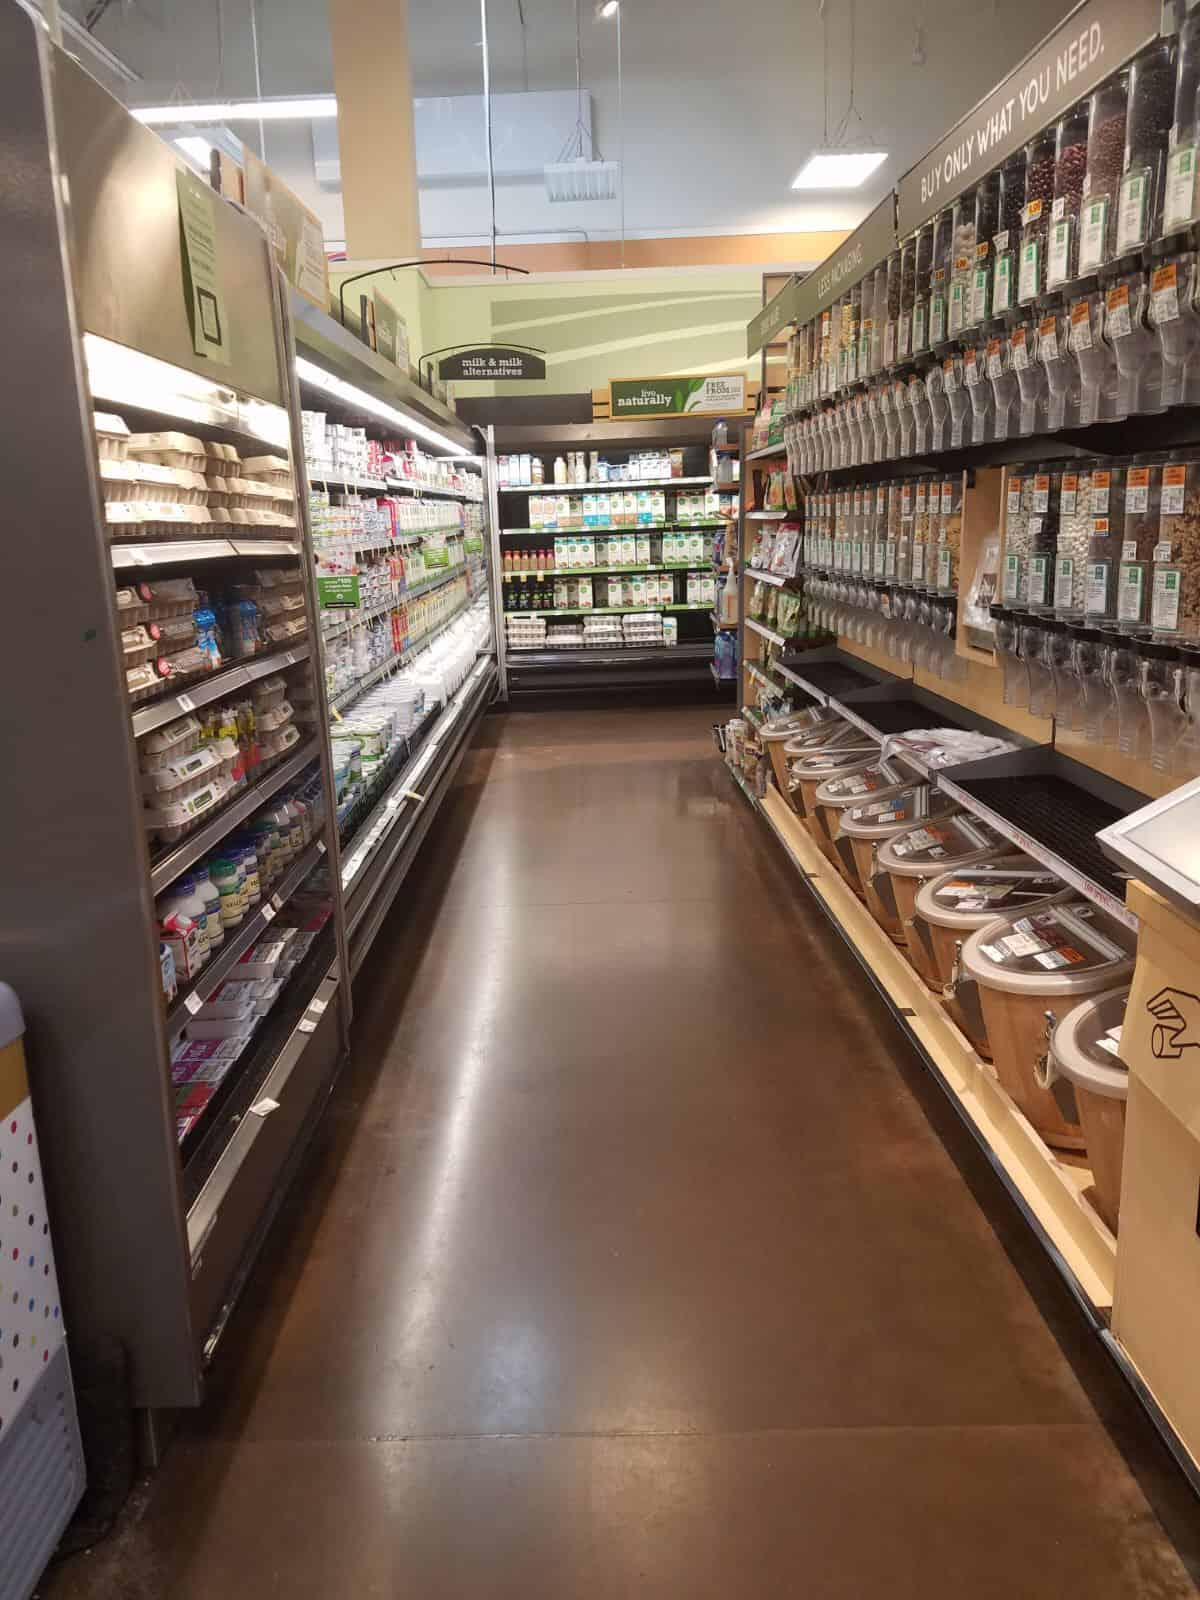 The dairy aisle in a super market.